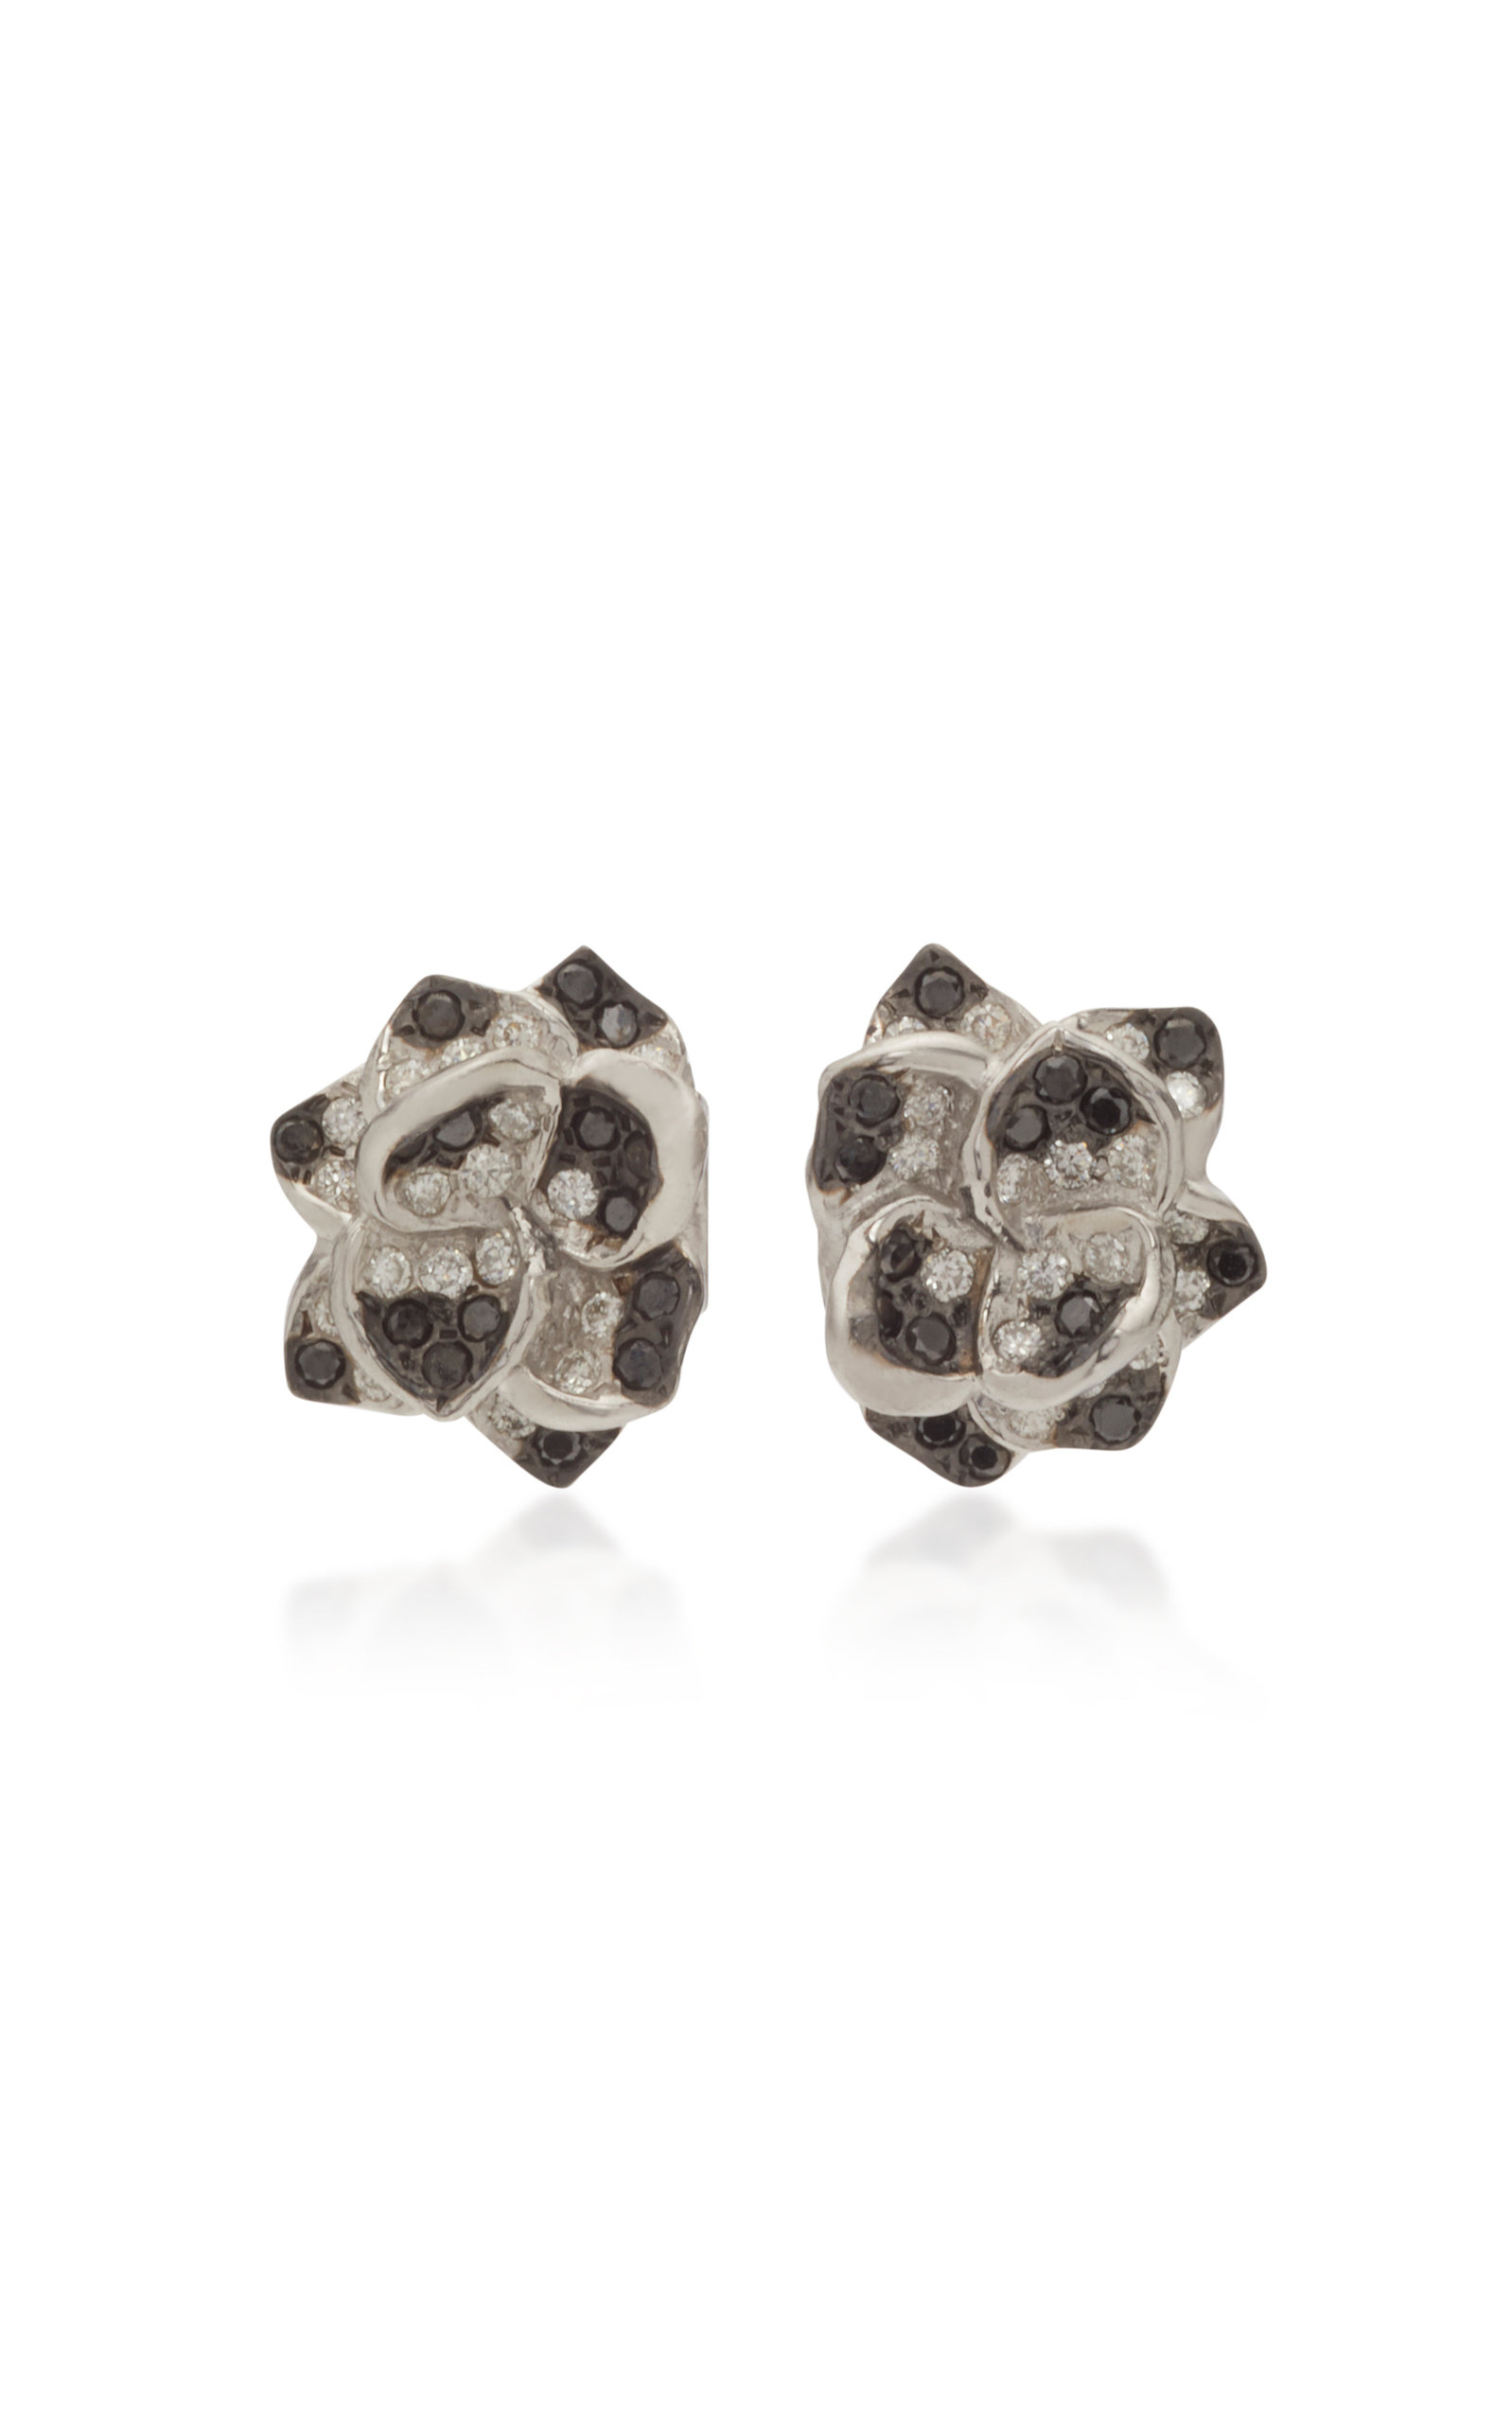 COLETTE JEWELRY 18K White Gold And Diamond Earrings in Black